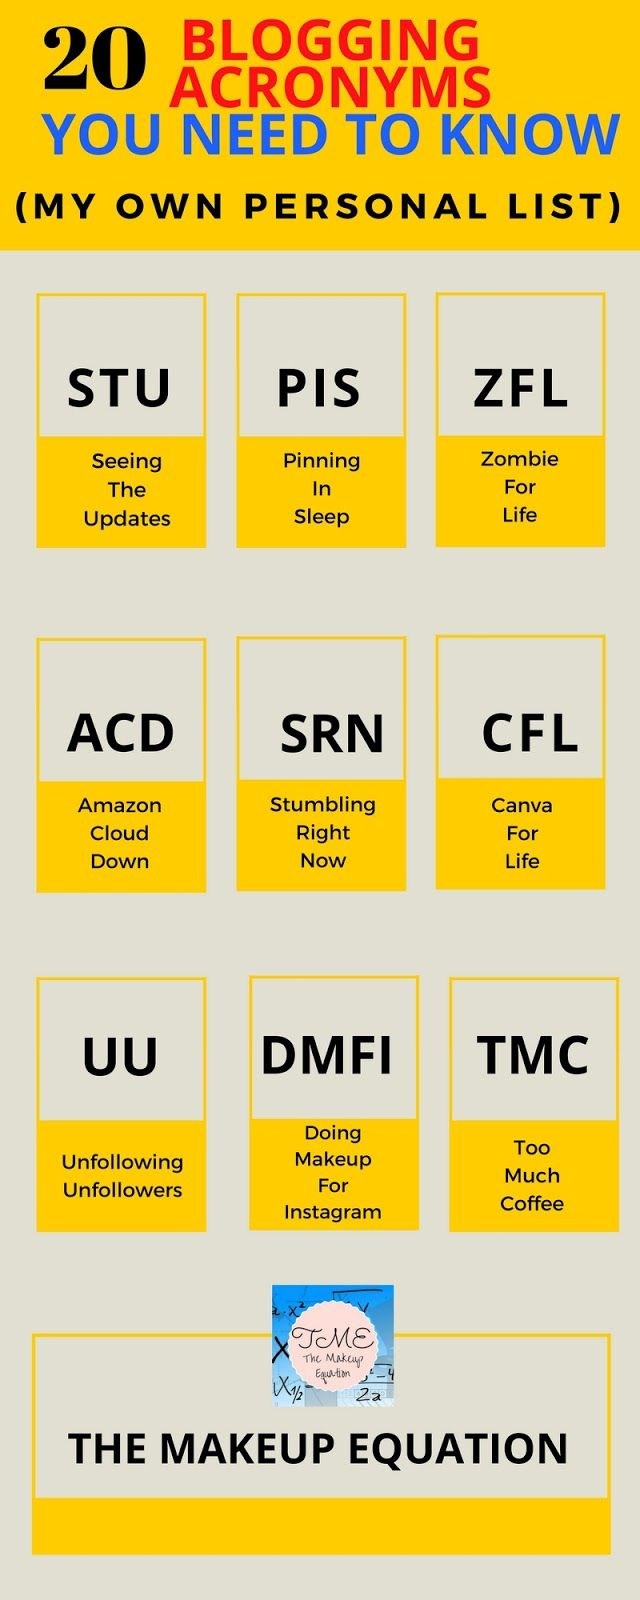 20 Blogging Acronyms You Need To Know